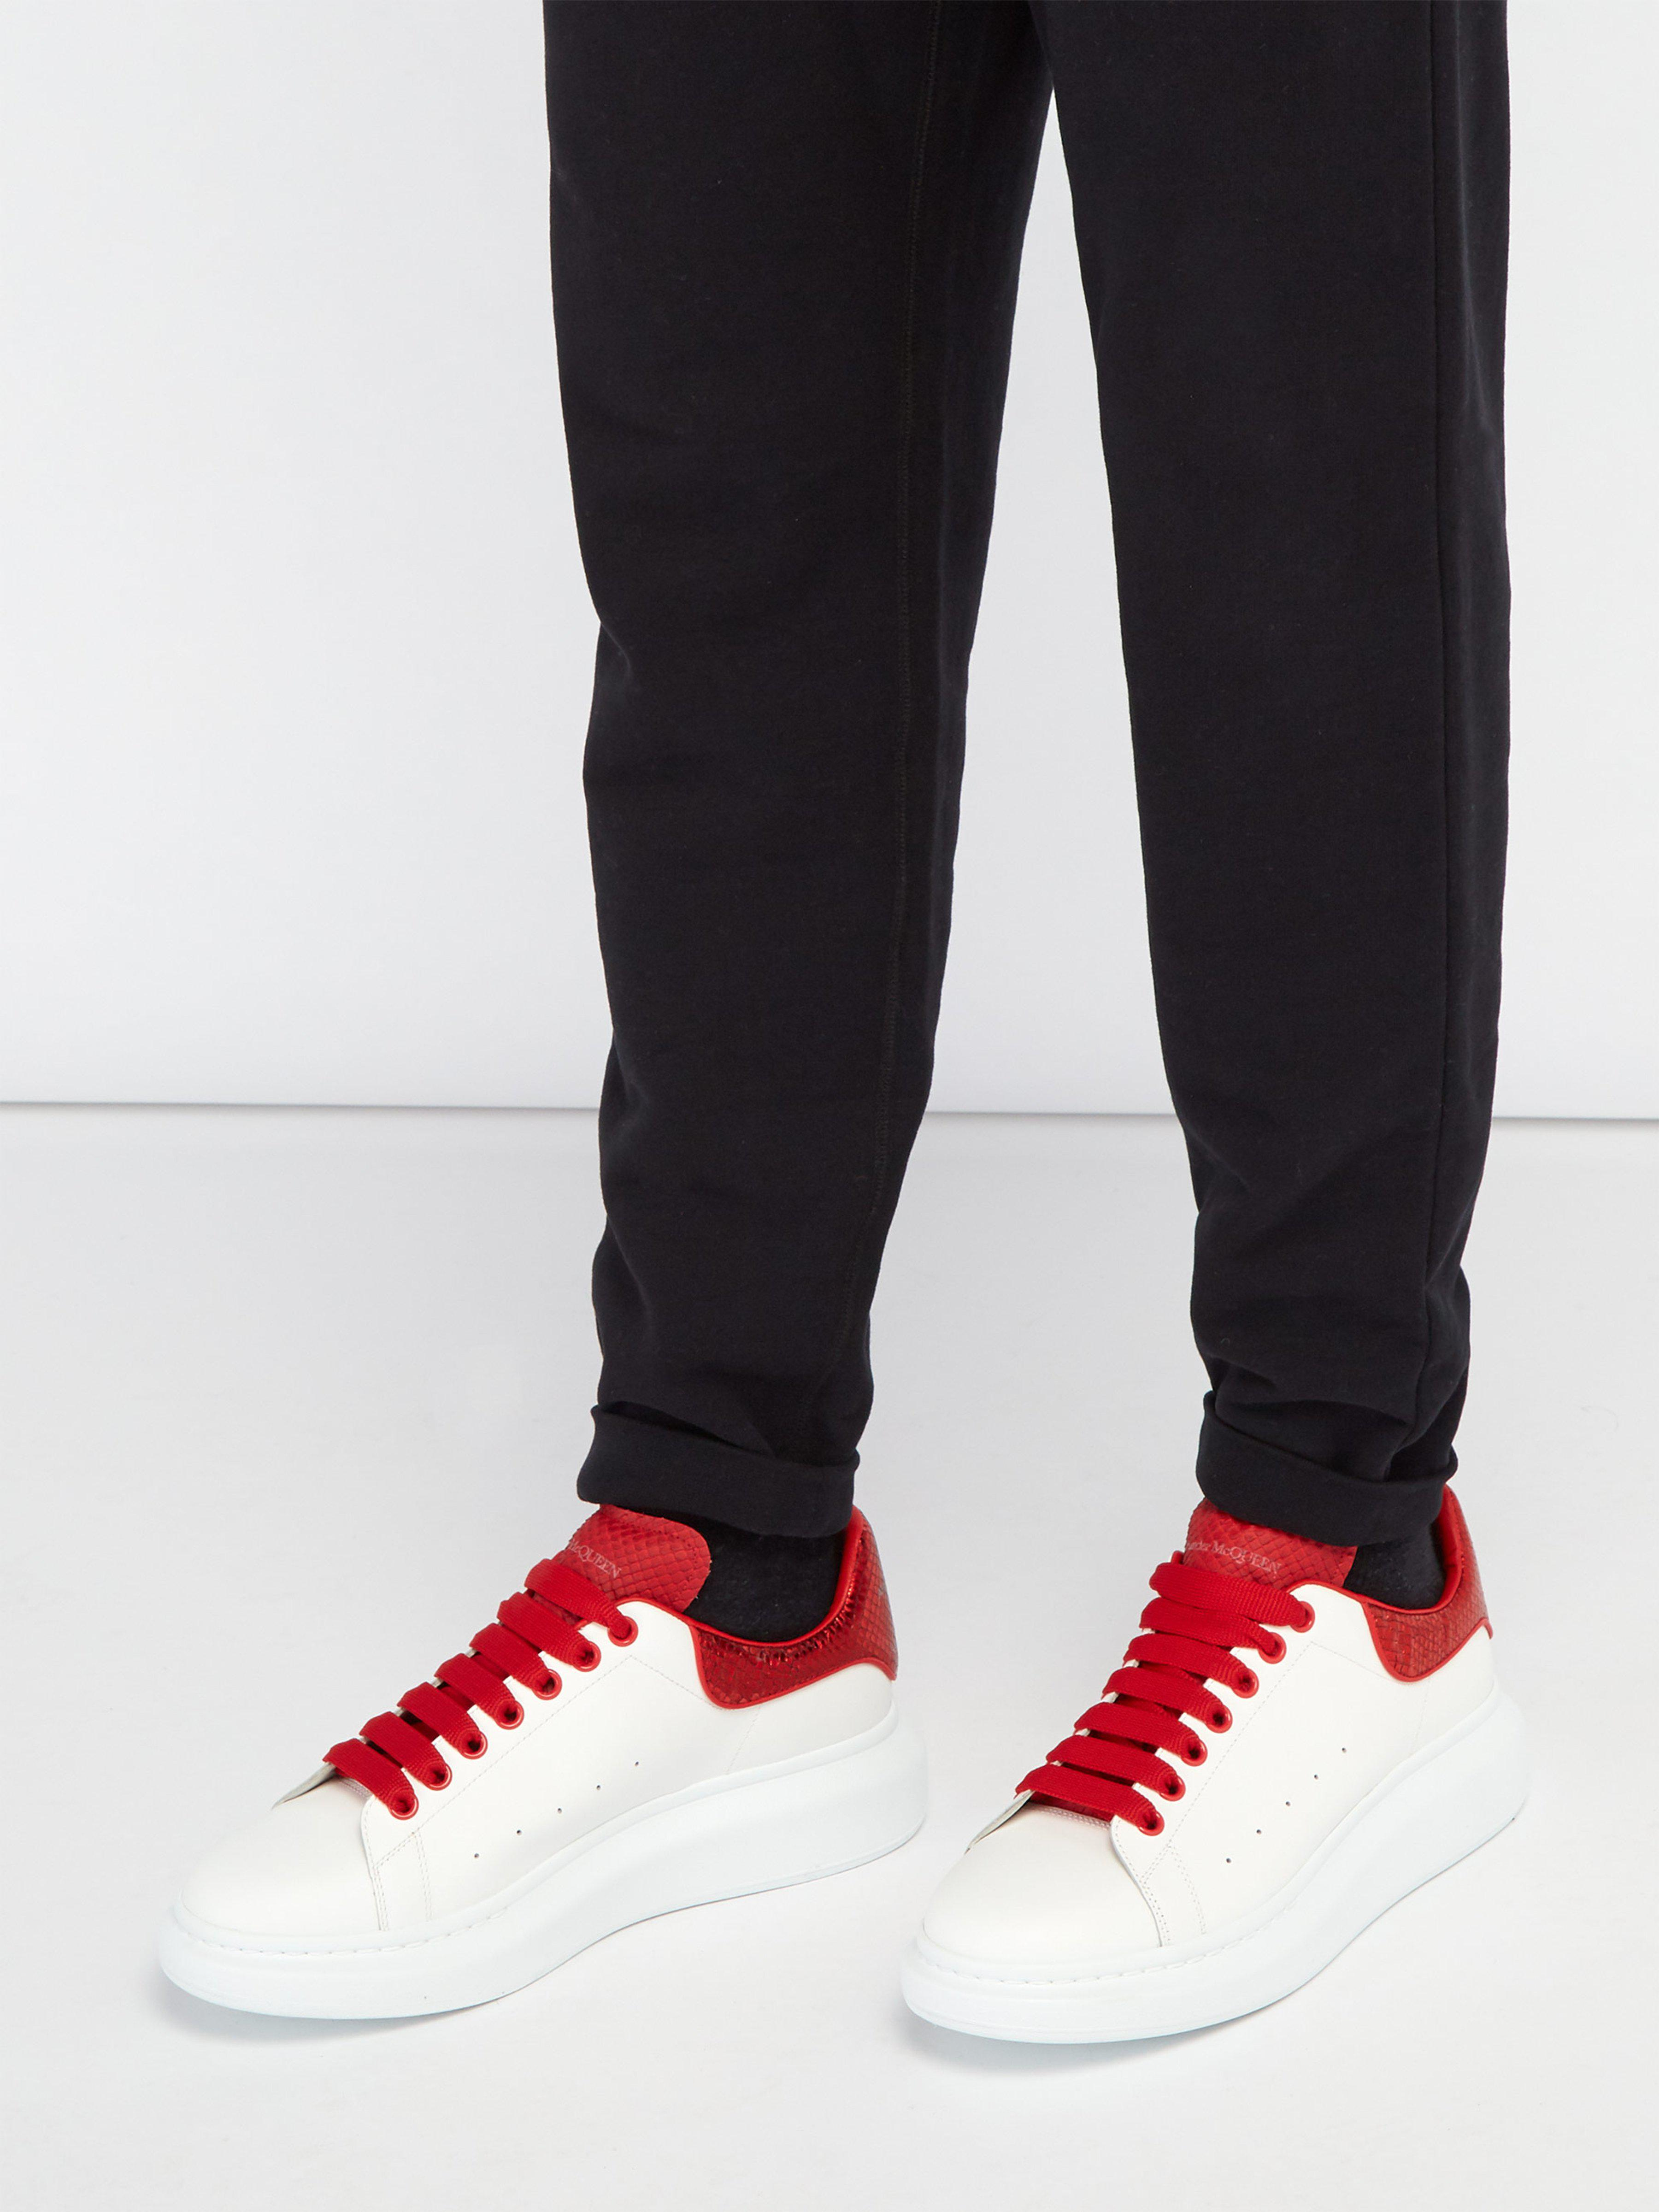 7037a7595a7a Alexander McQueen Raised Sole Low Top Leather Trainers in Red for Men - Lyst